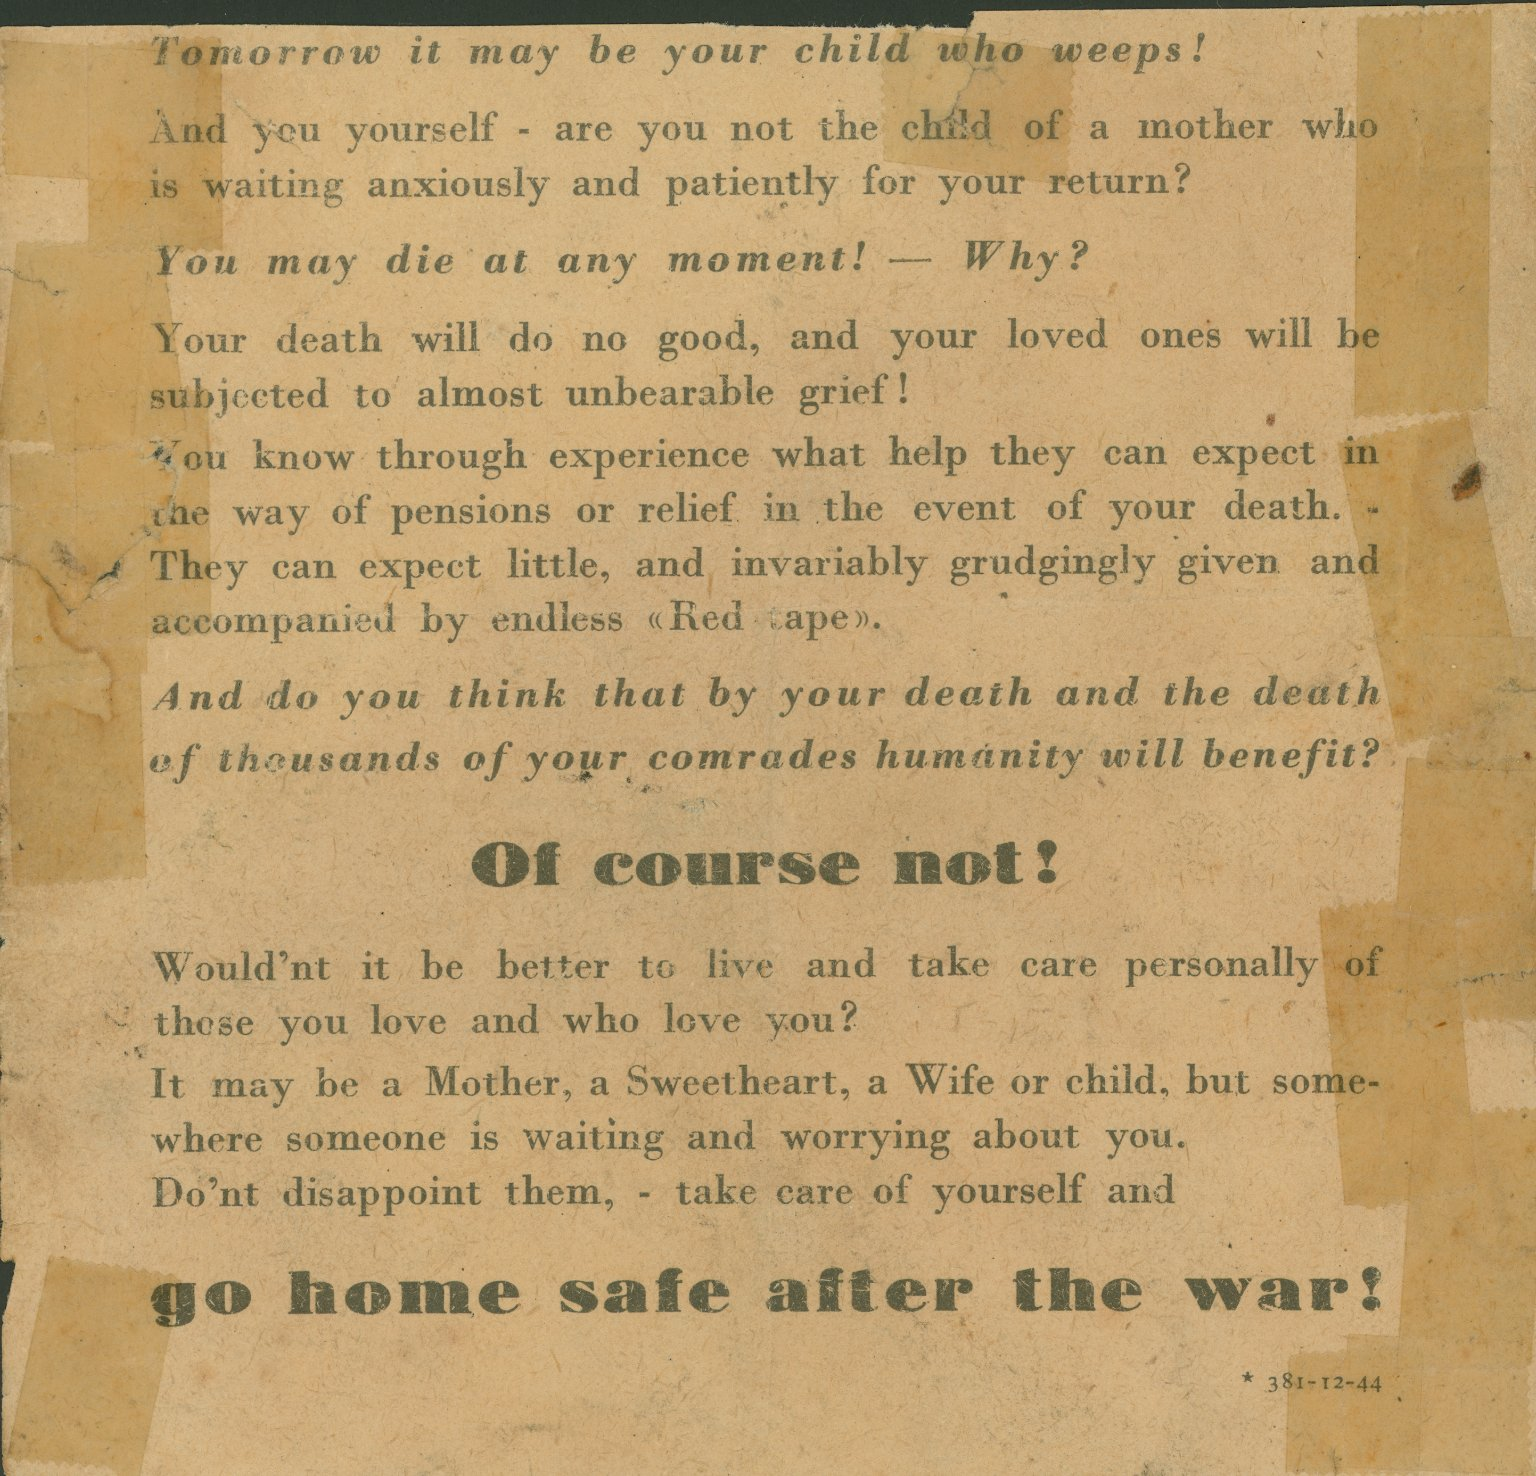 World War II Propaganda Collections